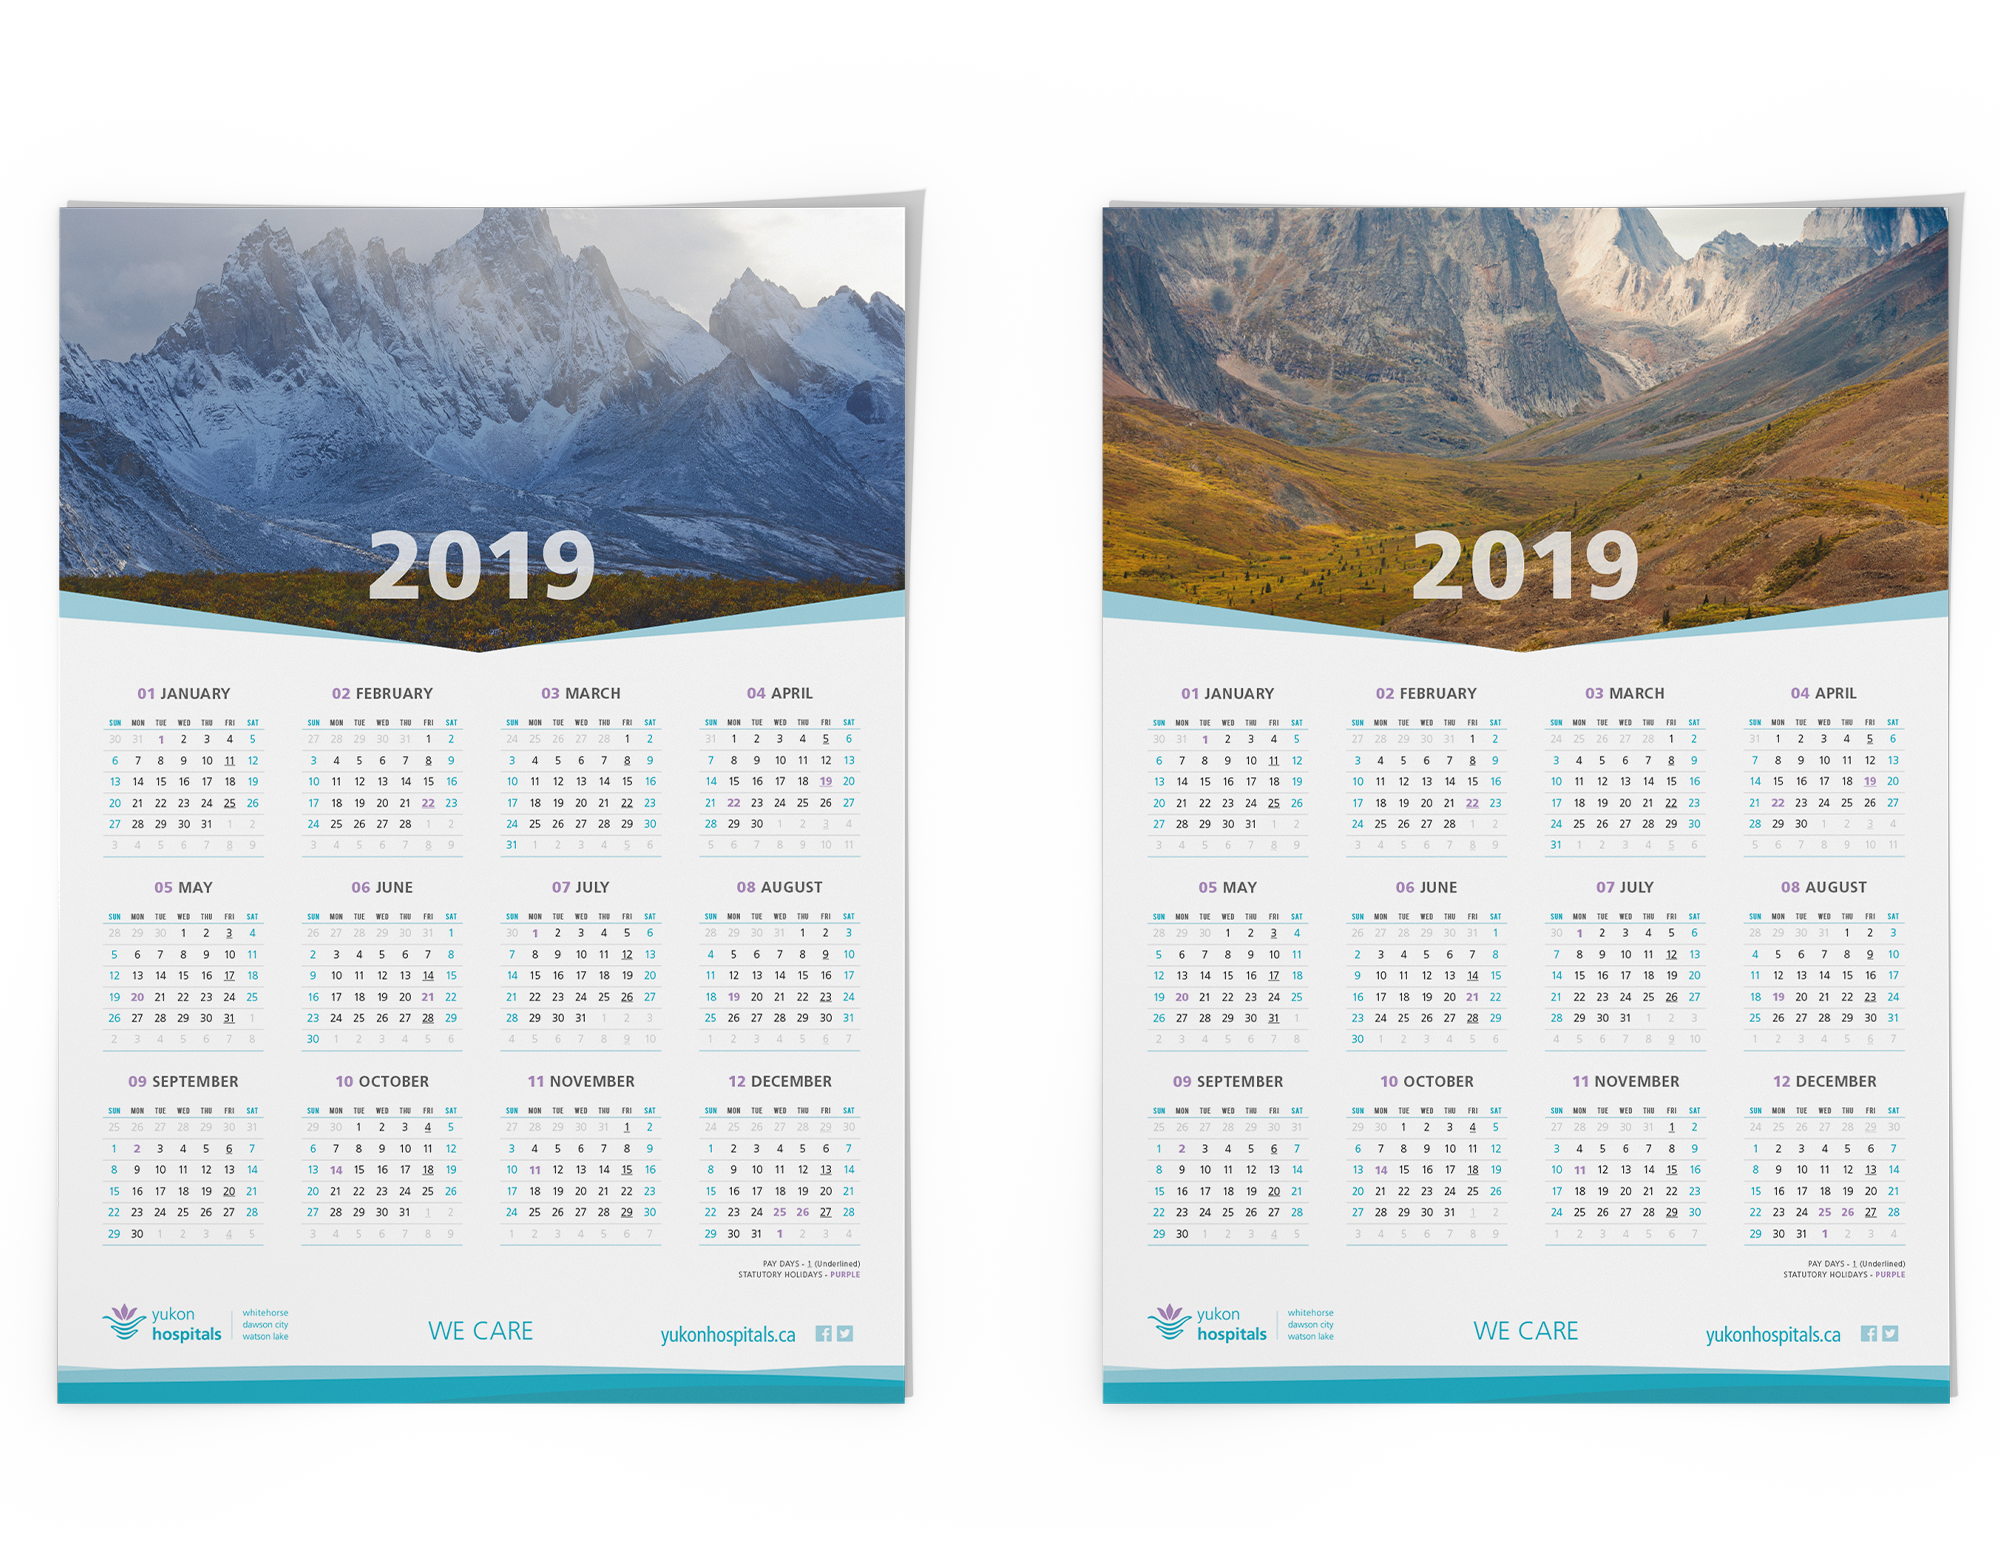 Sample image of 2019 wall calendar for the Yukon Hospital Corporation.